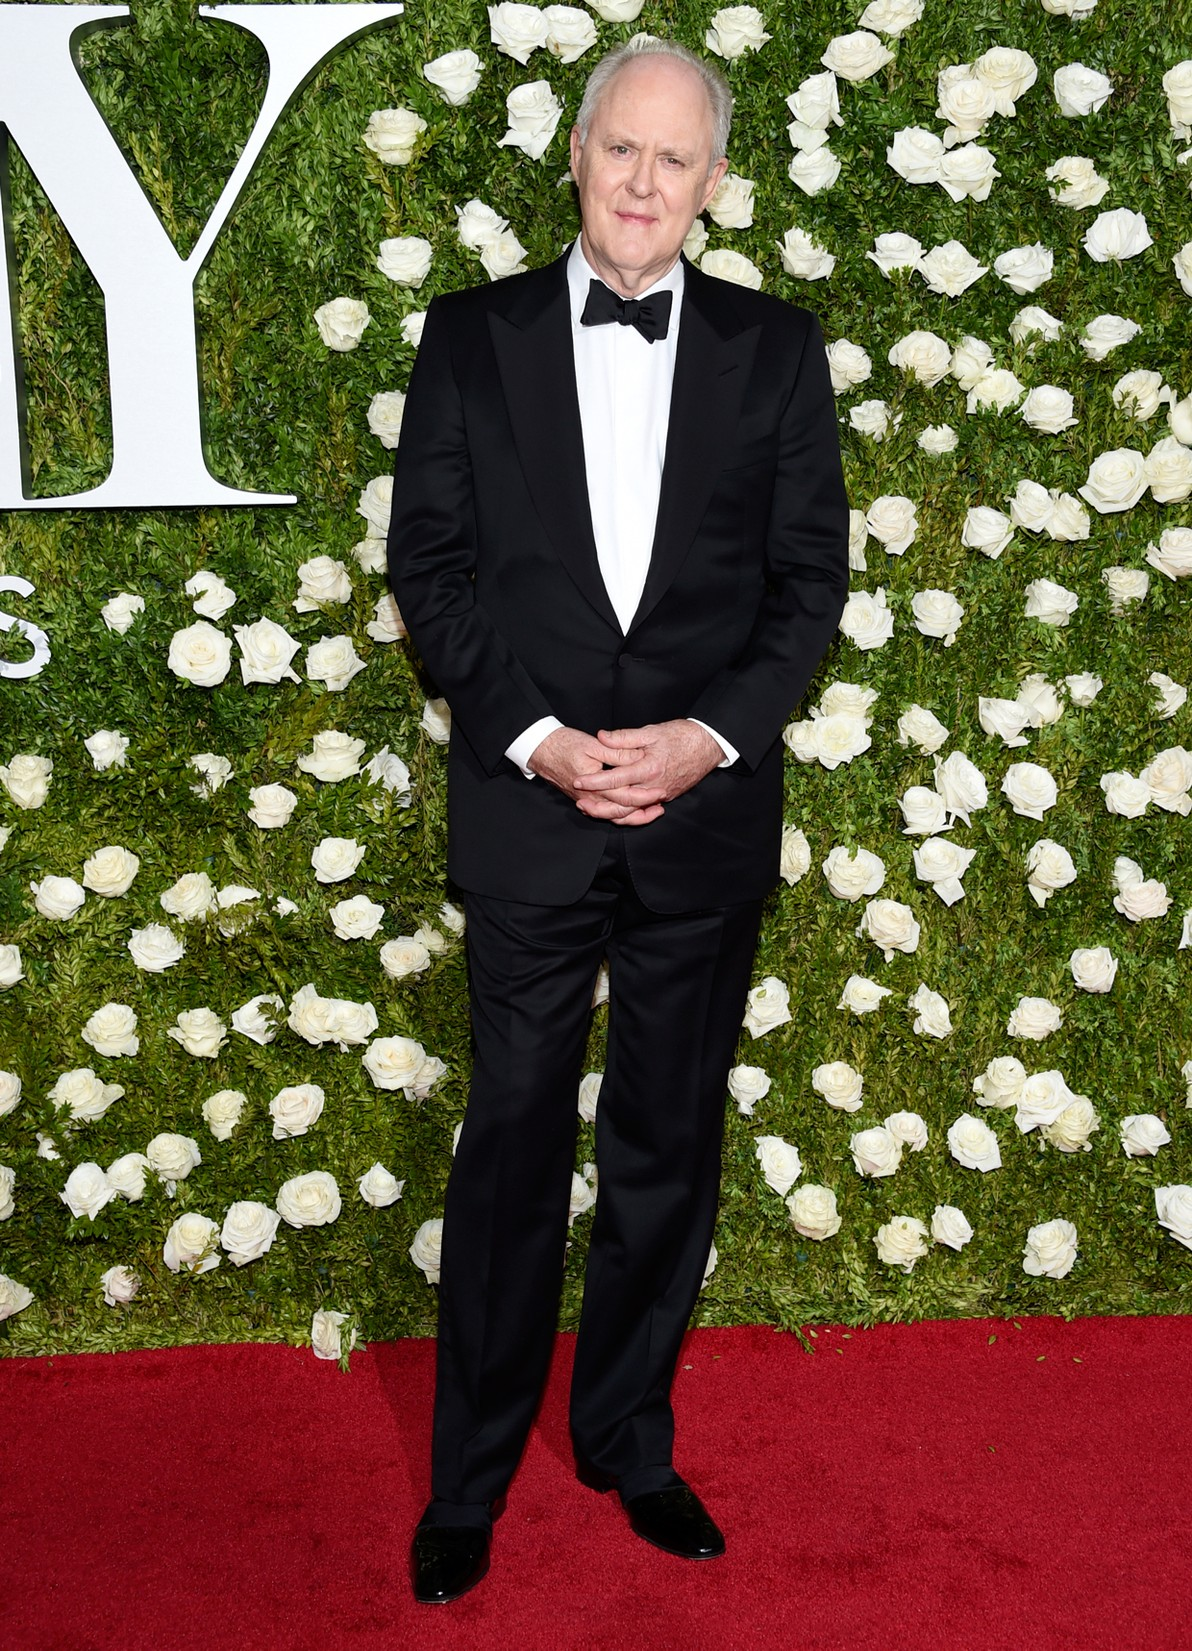 John Lithgow arrives at the 71st annual Tony Awards at Radio City Music Hall on June 11, 2017 in New York City.